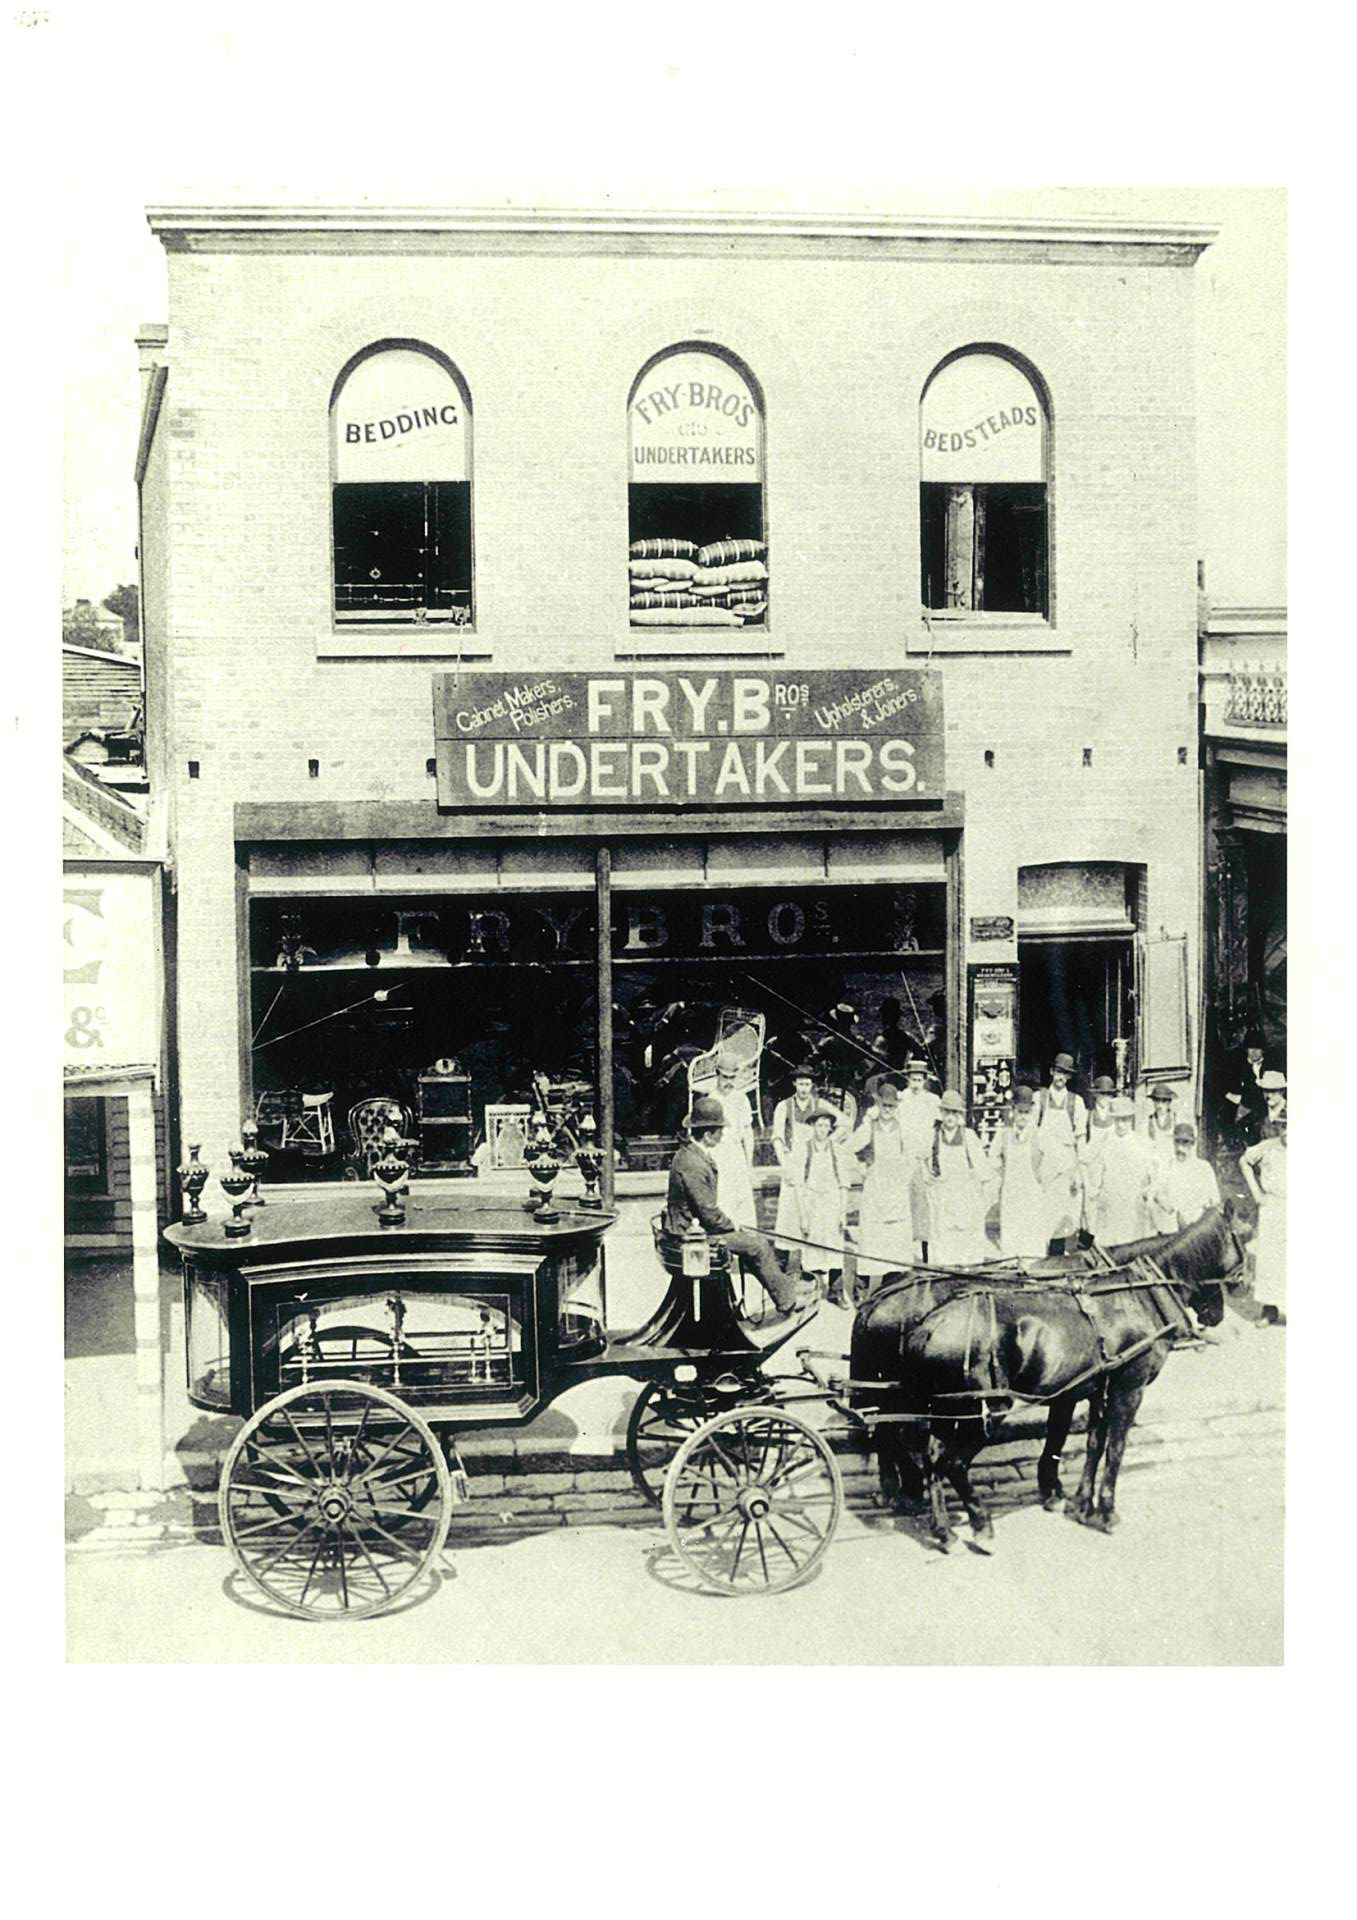 Photograph of fry bros funeral home in maitland 1889 upfront by people and cart funeral vehicle.